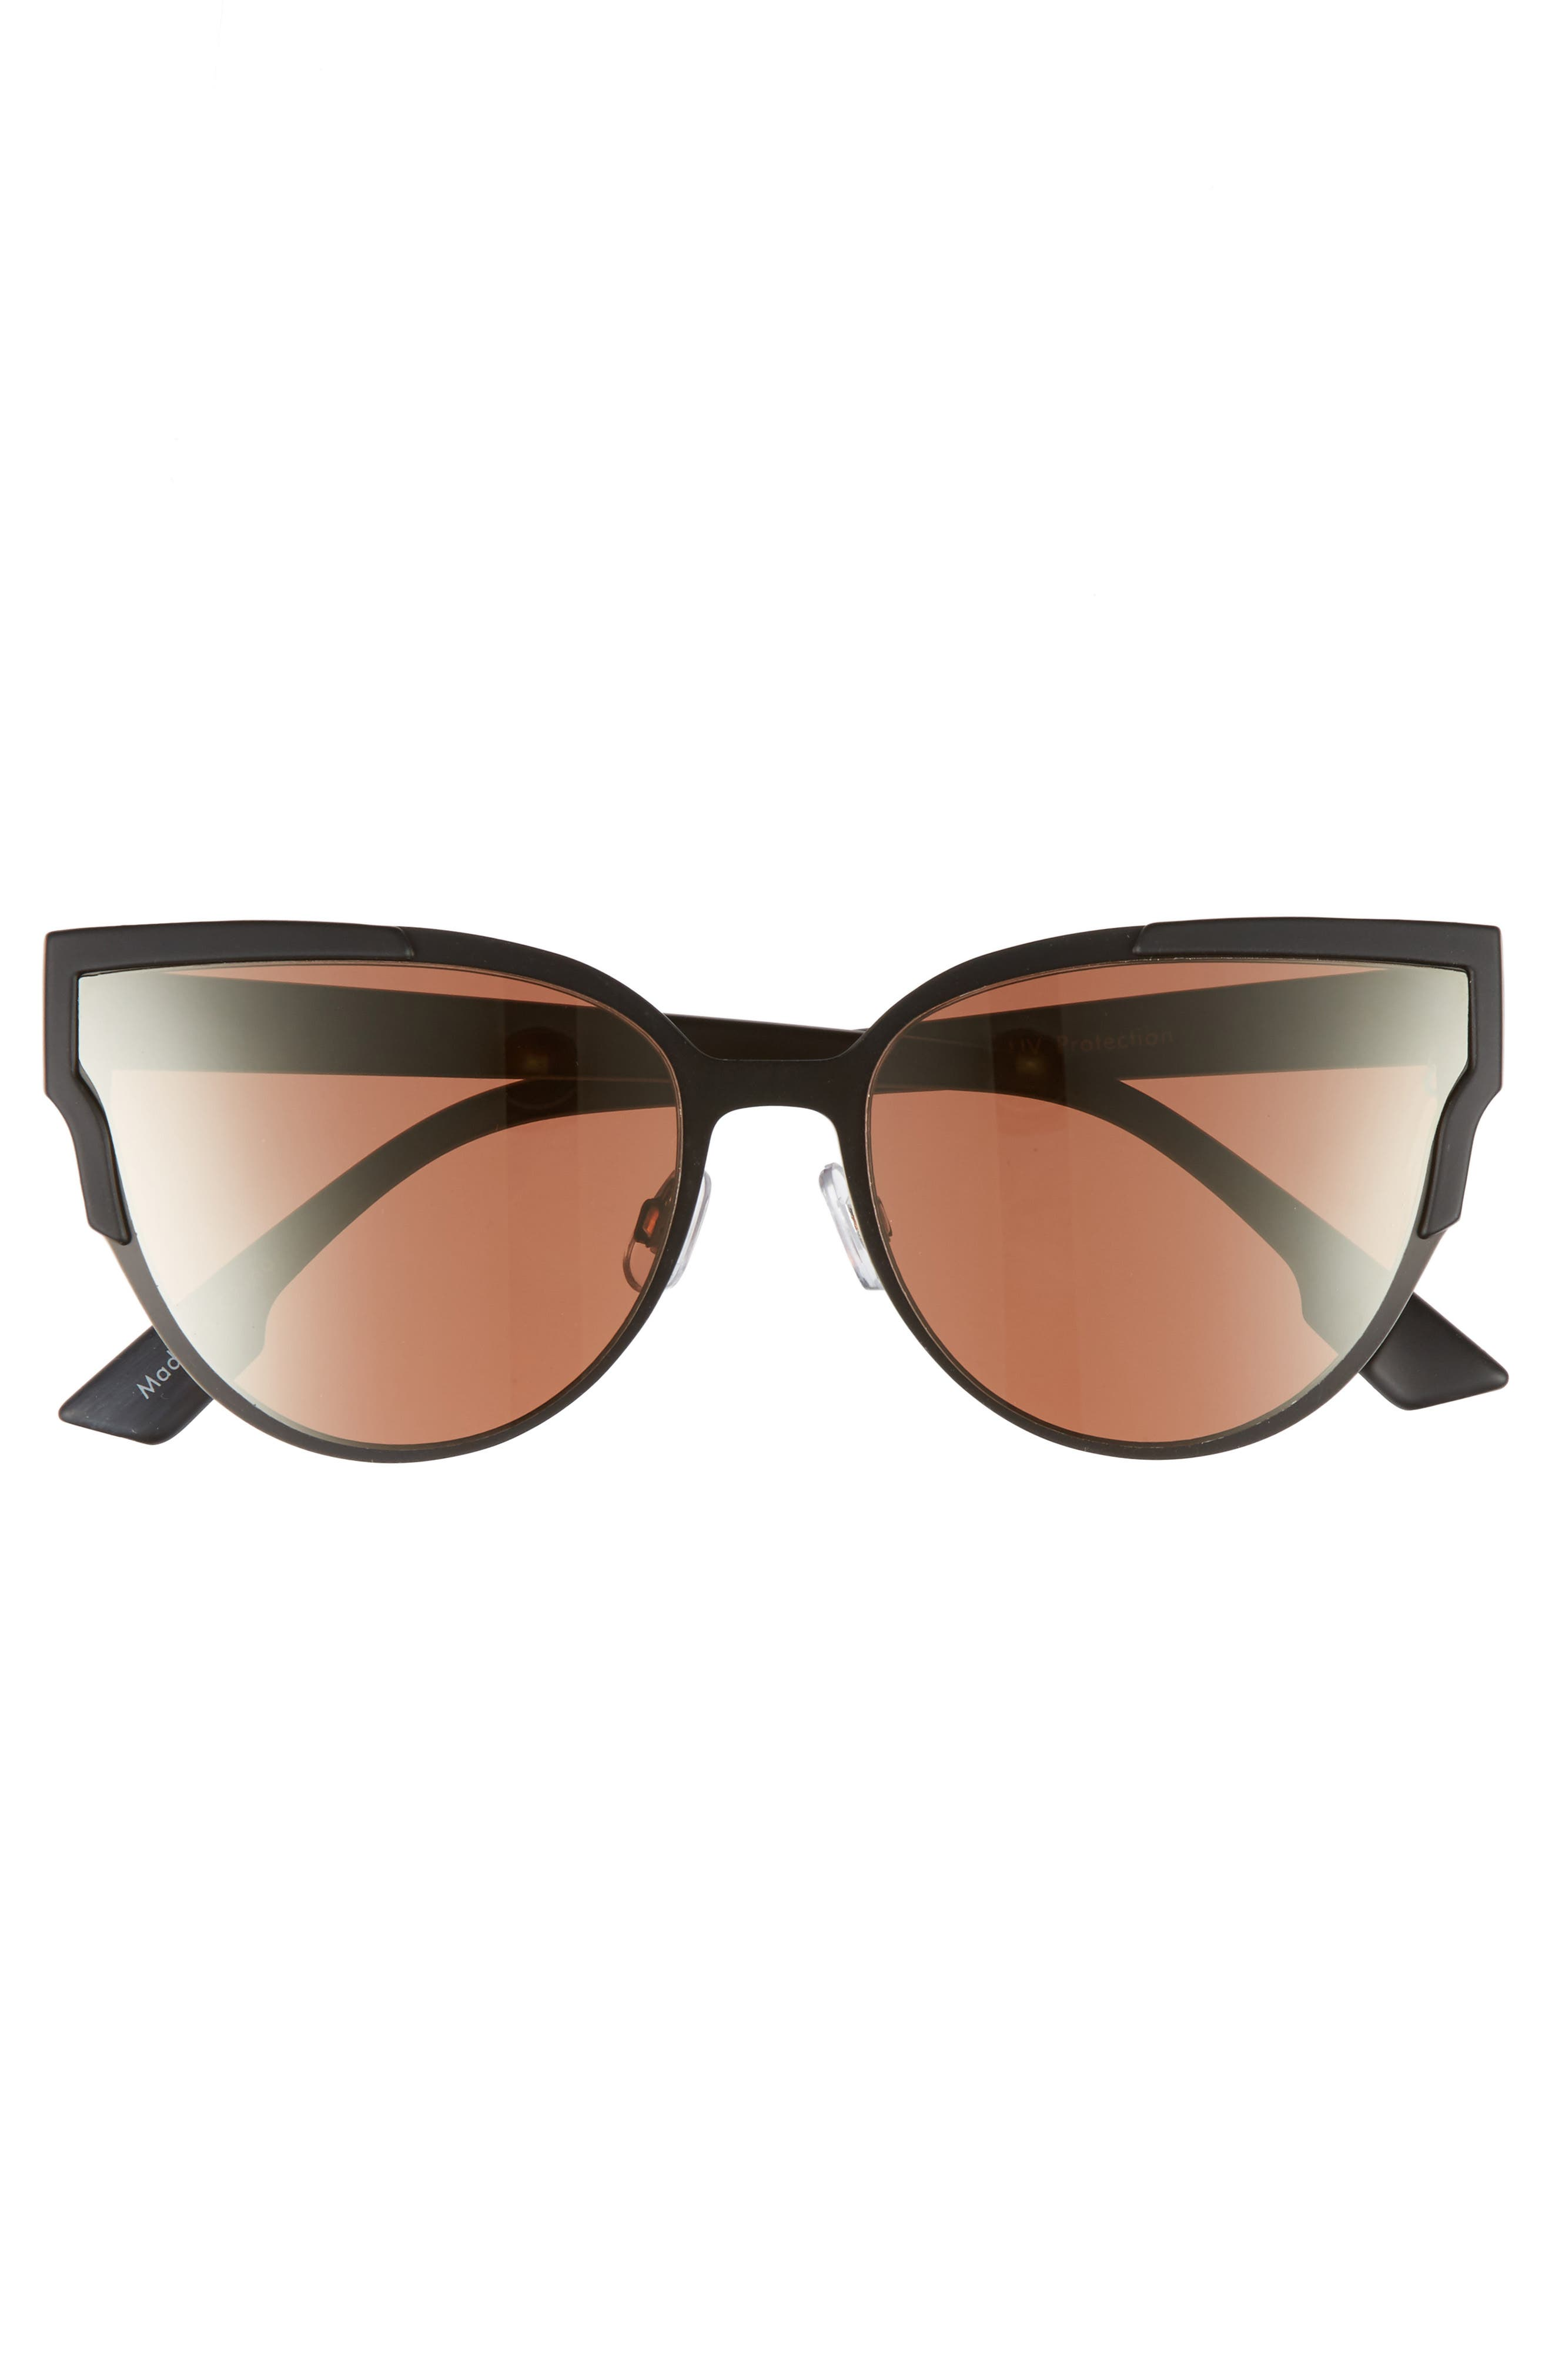 59mm Cat Eye Sunglasses,                             Alternate thumbnail 3, color,                             001